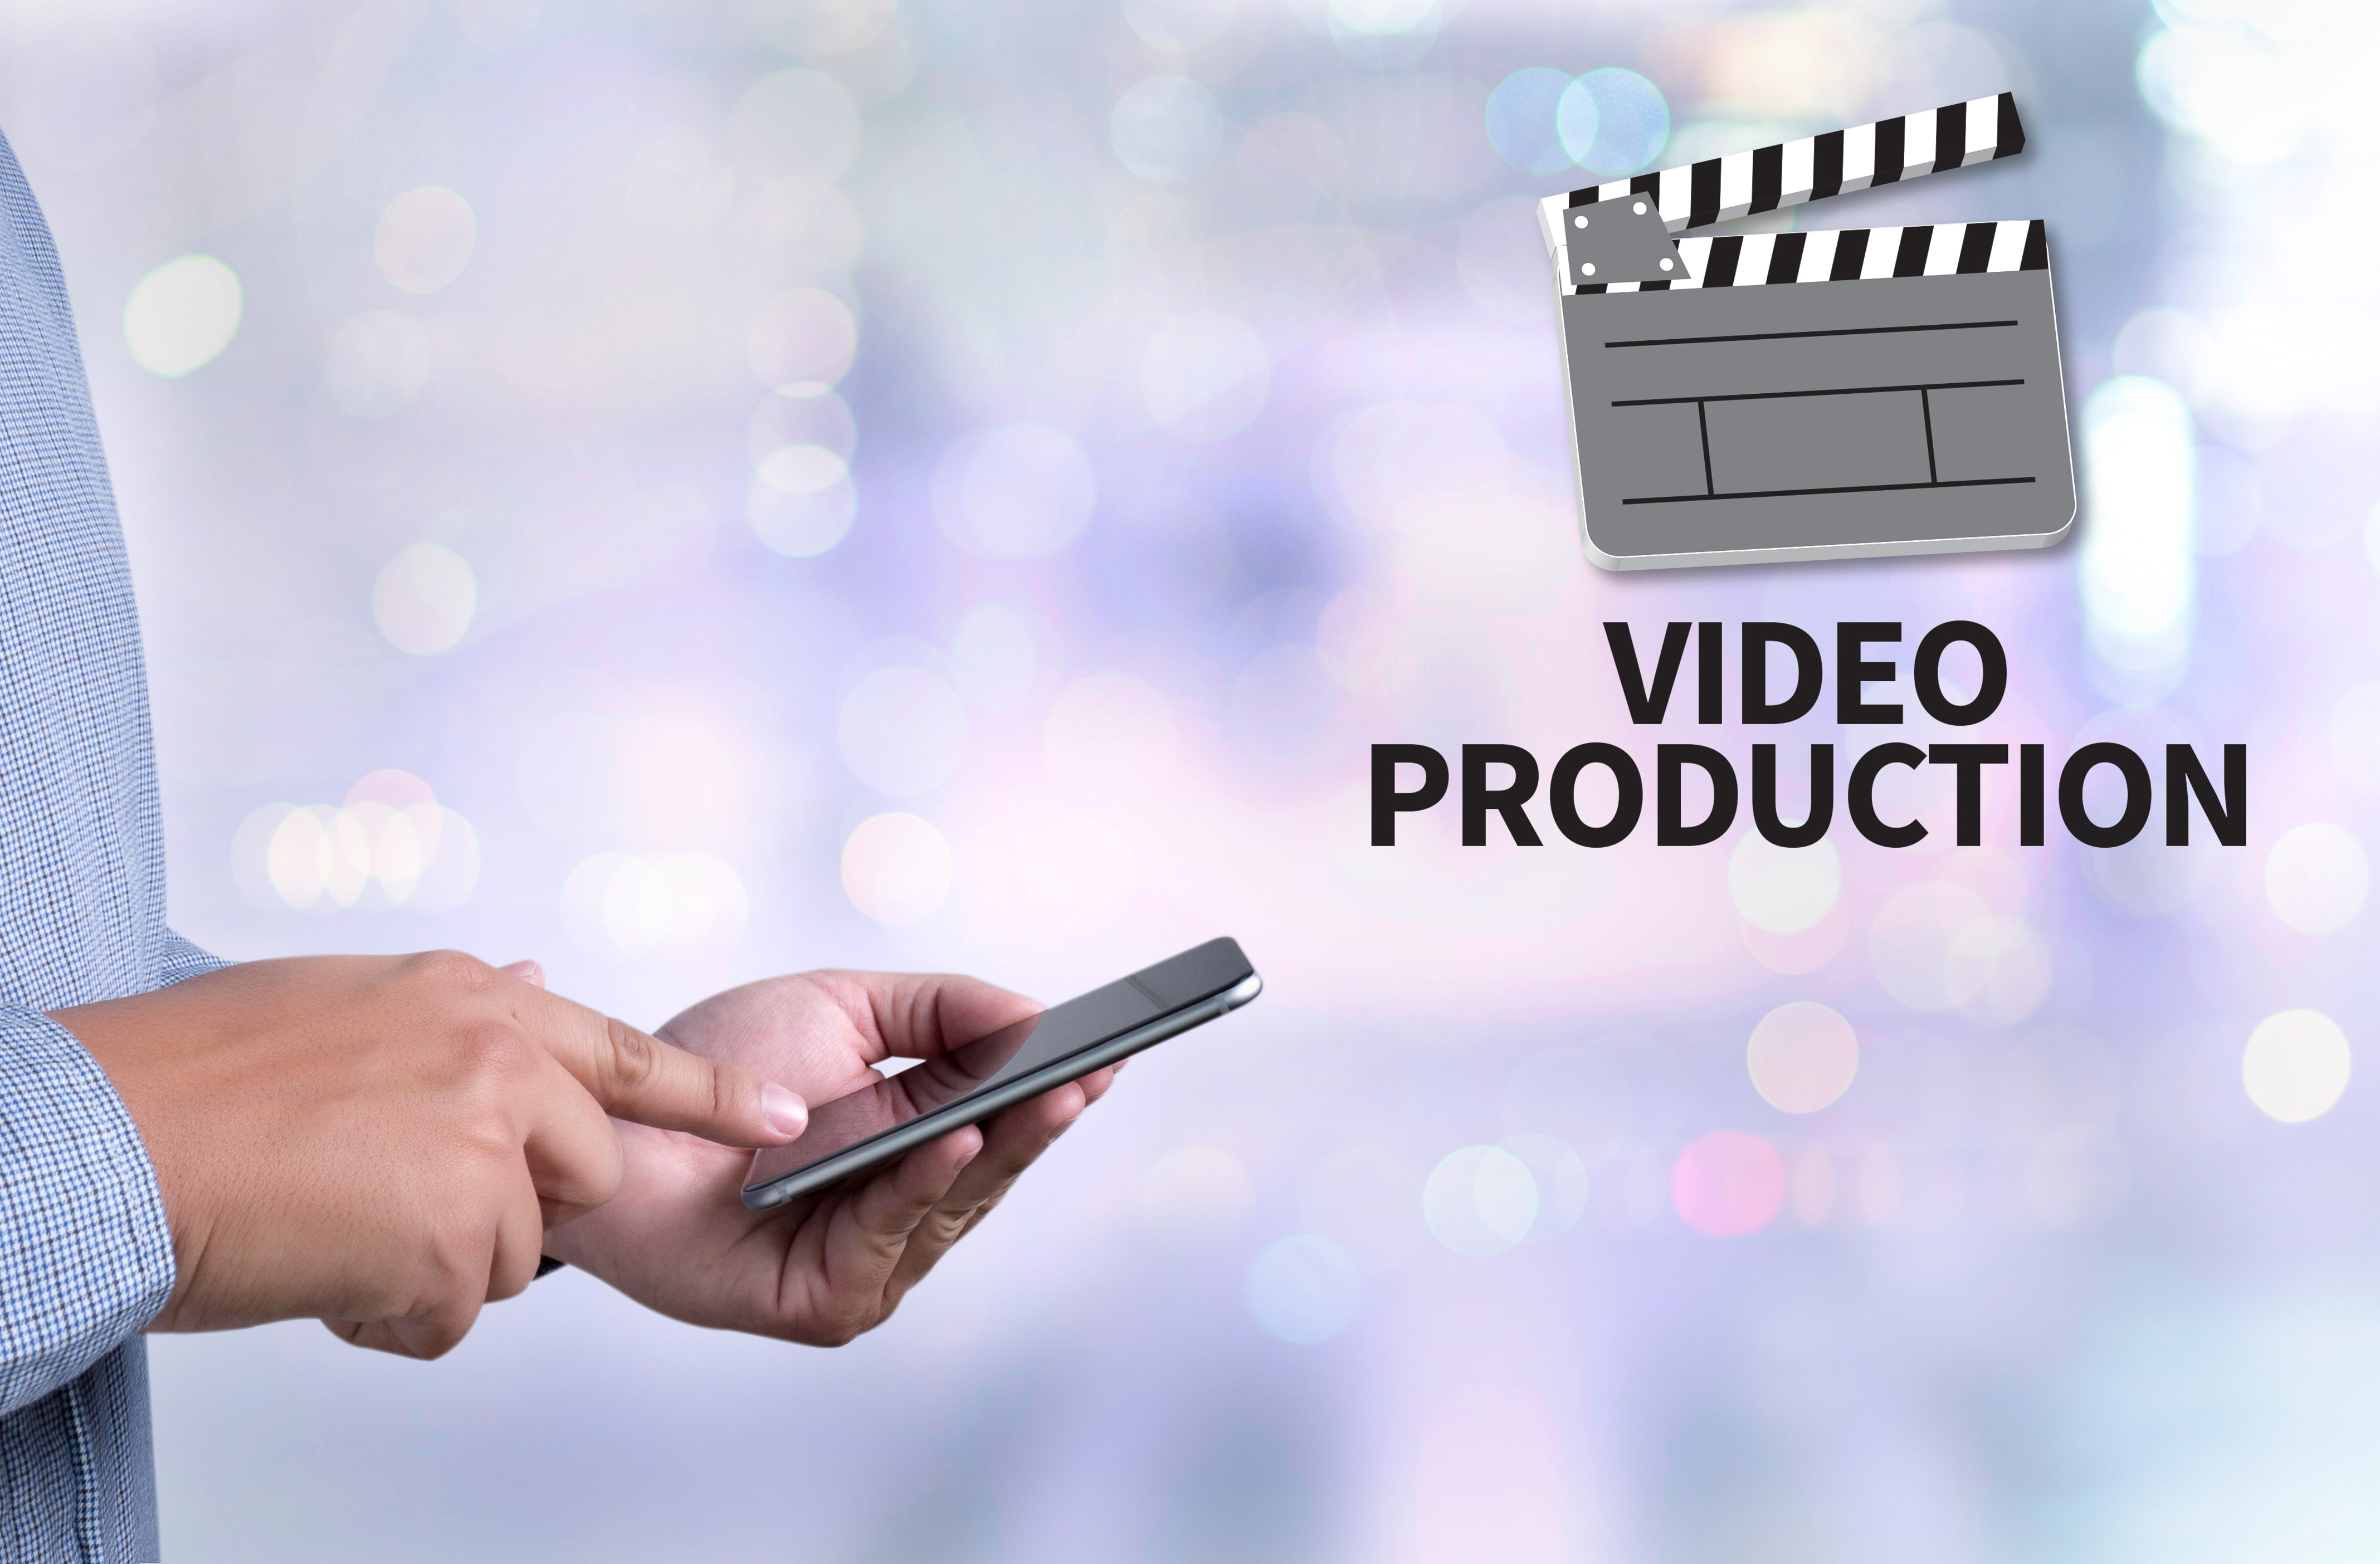 Video-Production-Tips-to-Enhance-Quality-and-Drive-Views-min[1]